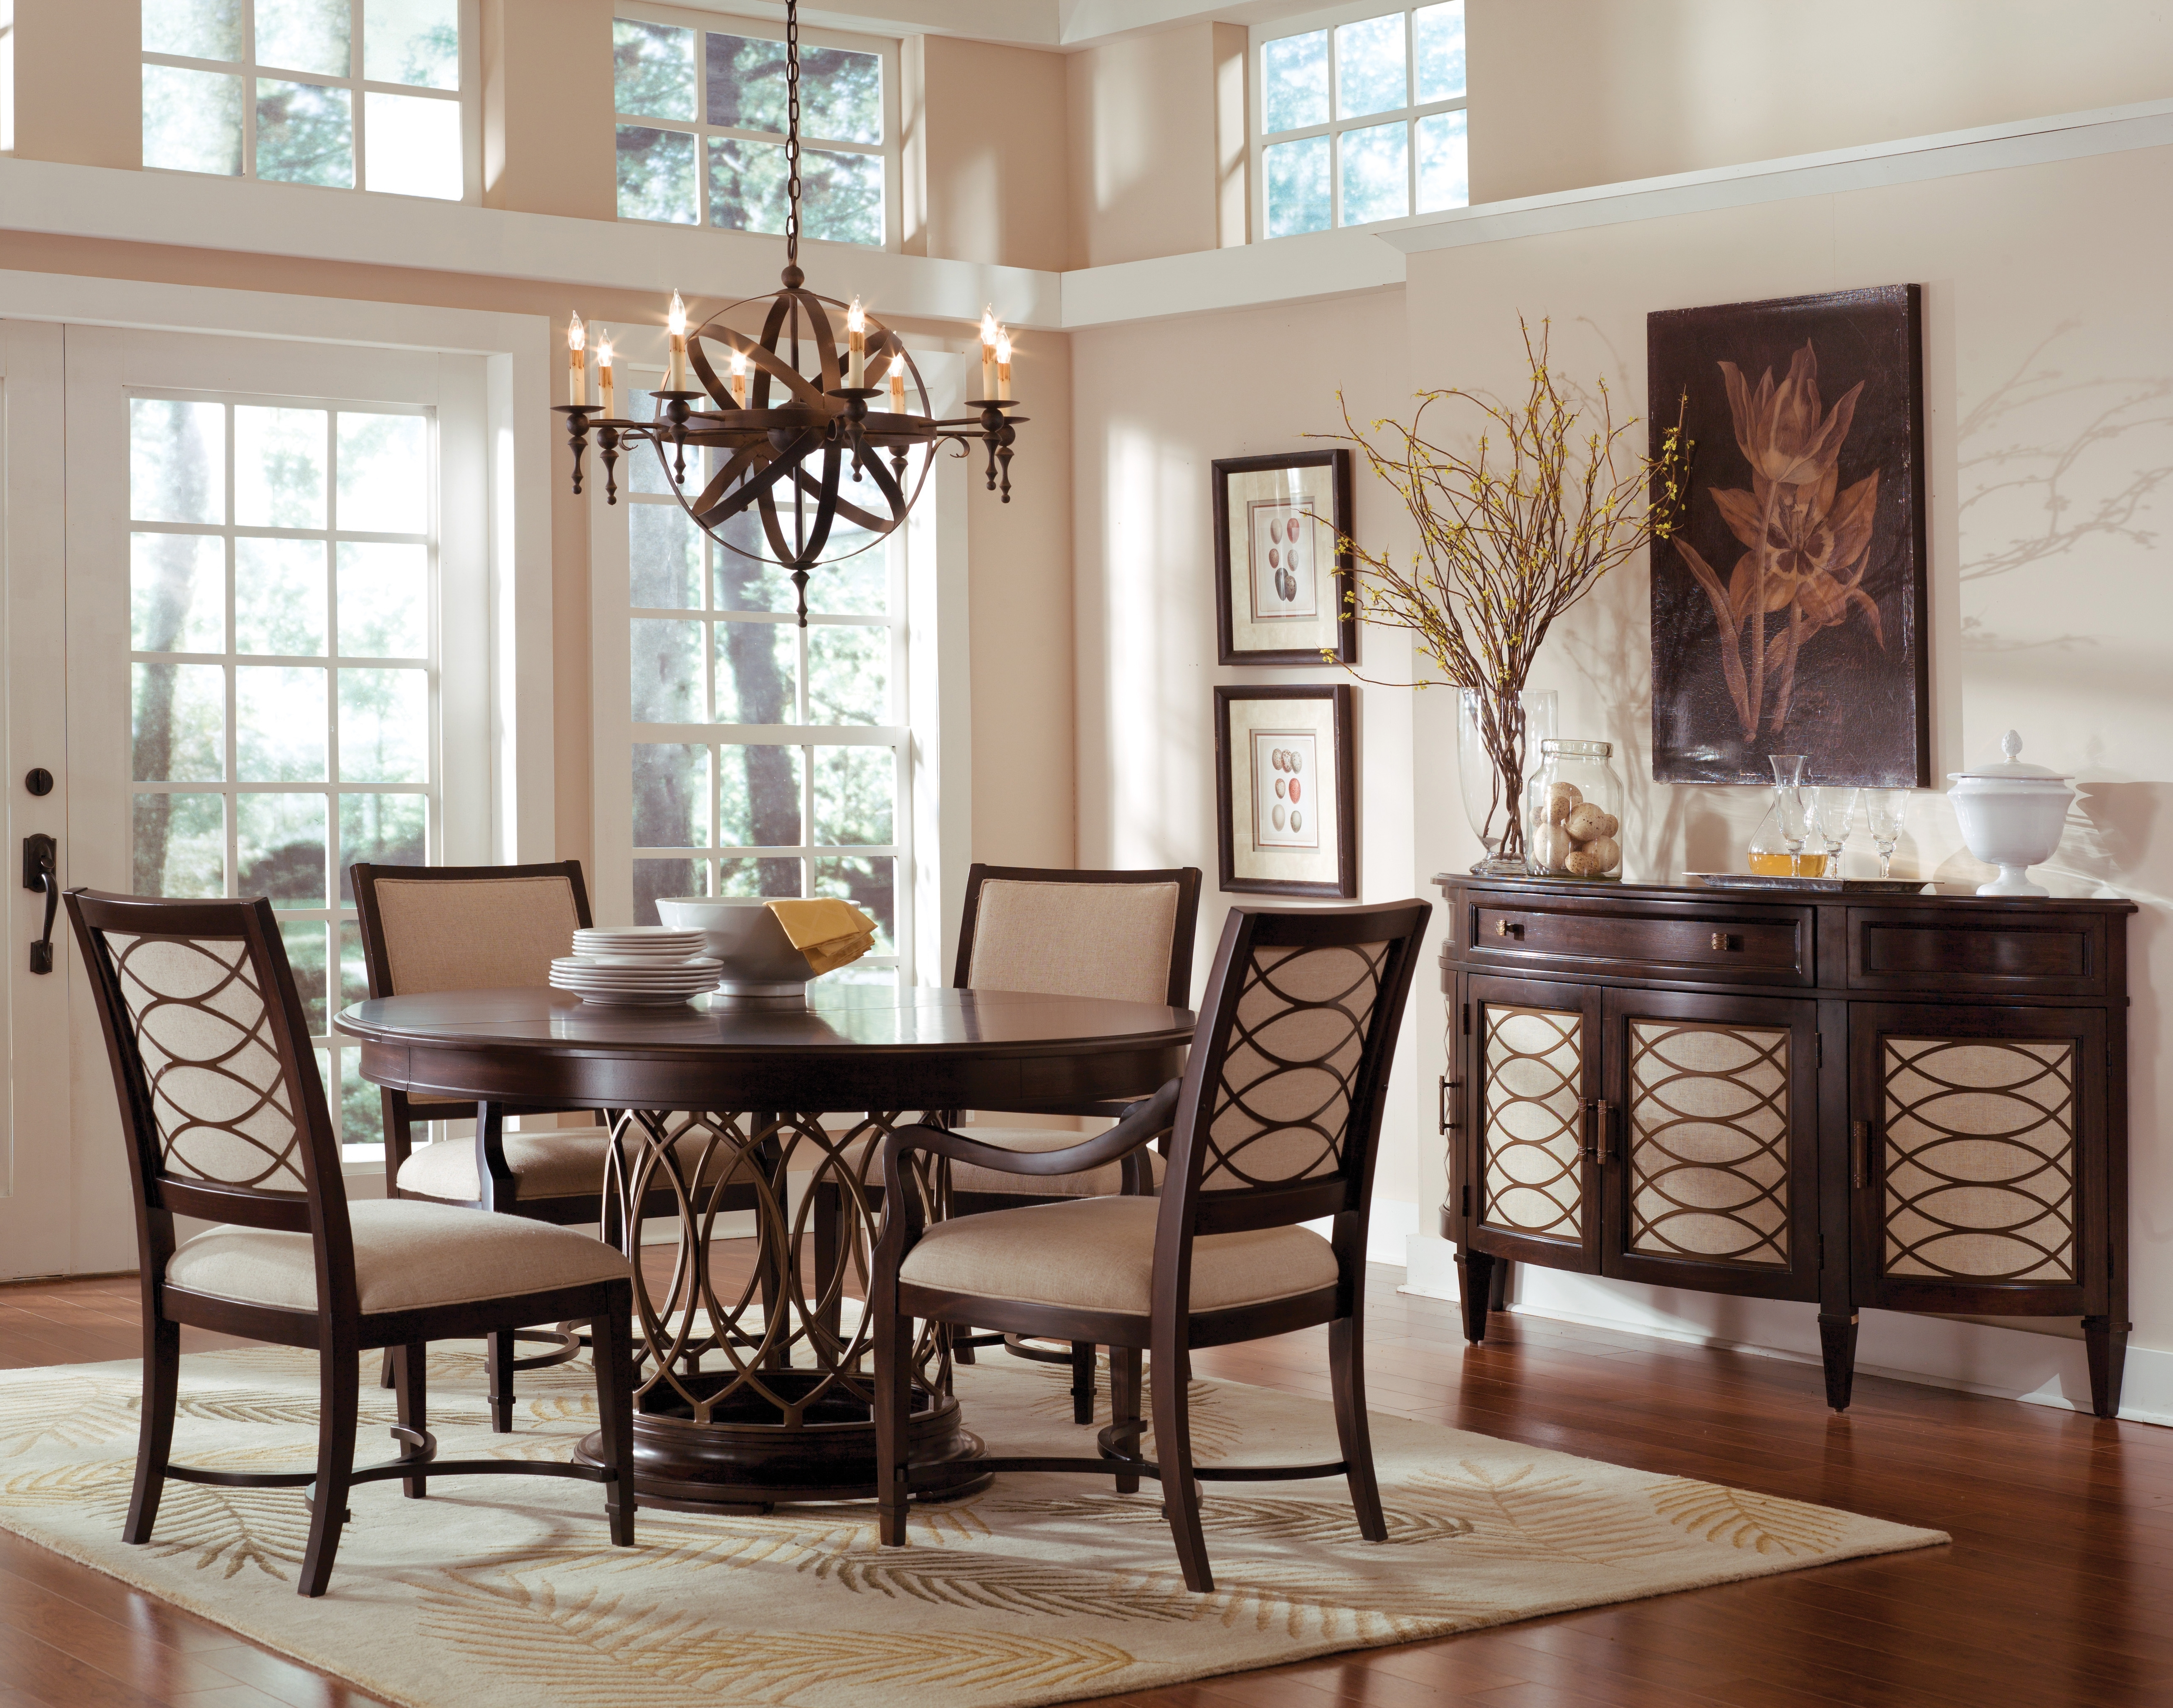 Grady Round Dining Tables Regarding 2018 Brilliant Ideas Of Round Dining Room Table With Grady Round Dining (View 11 of 25)